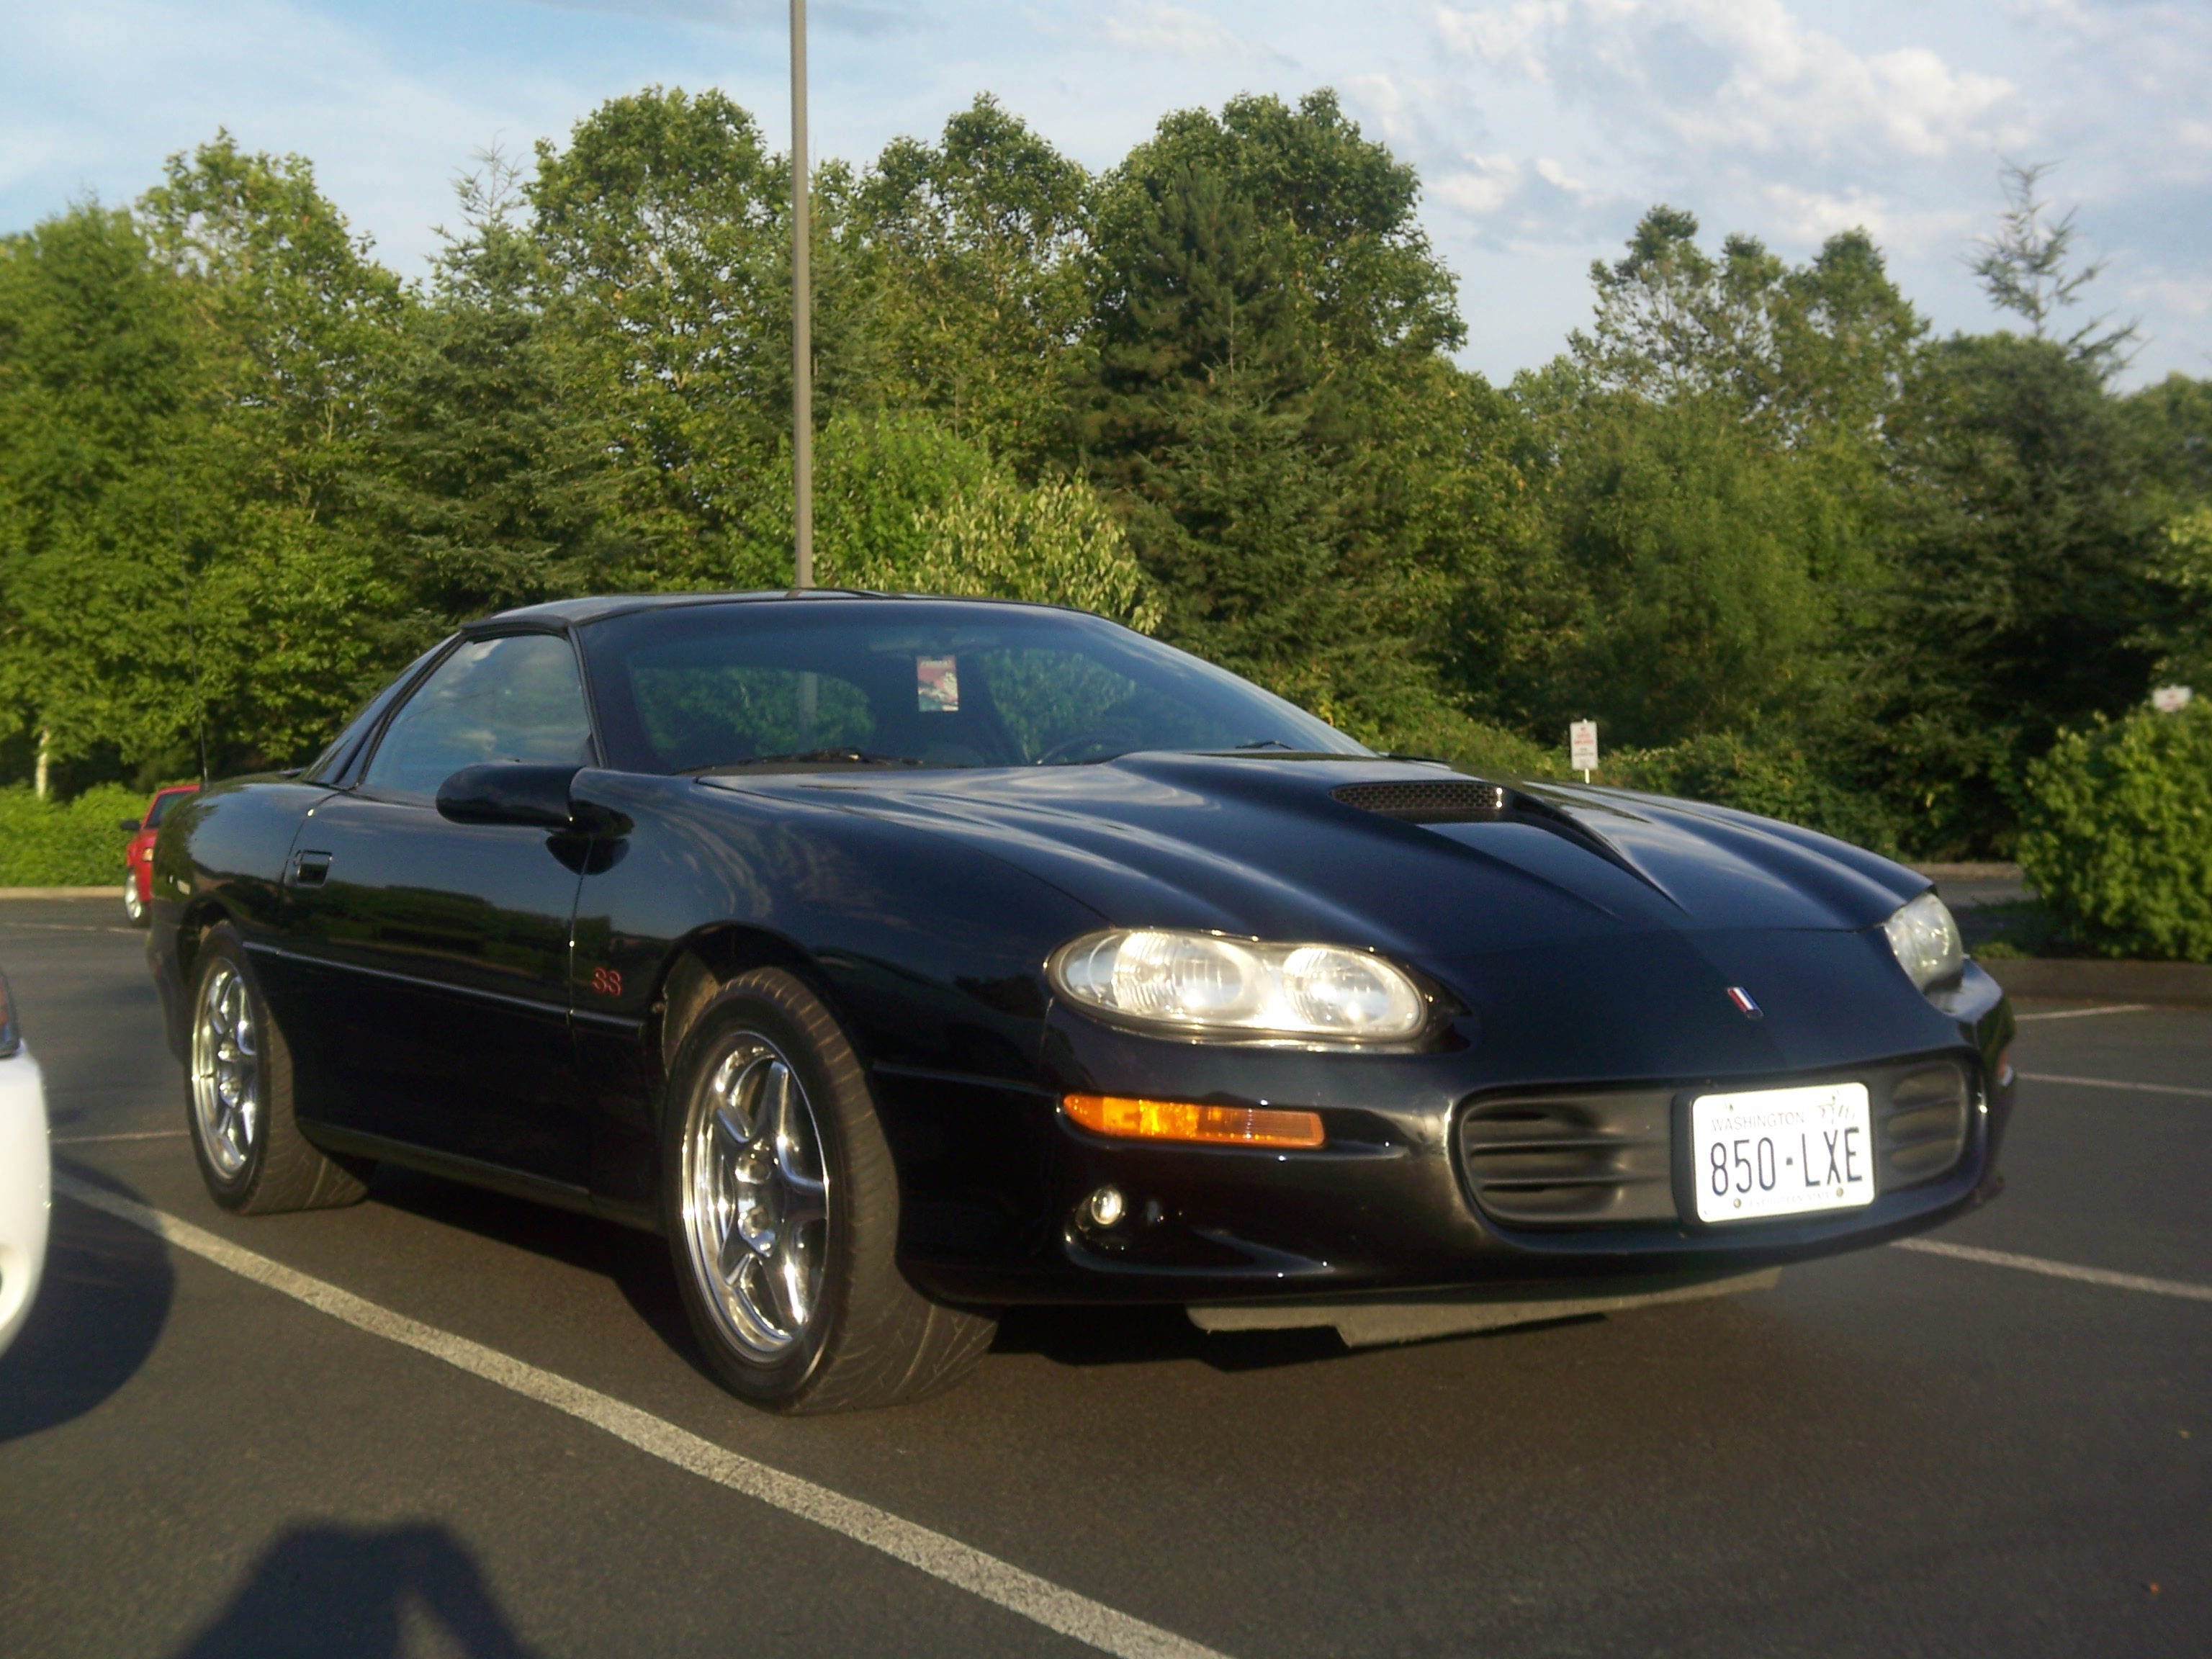 2000 chevrolet camaro ss hooker headers 1 4 mile drag. Black Bedroom Furniture Sets. Home Design Ideas